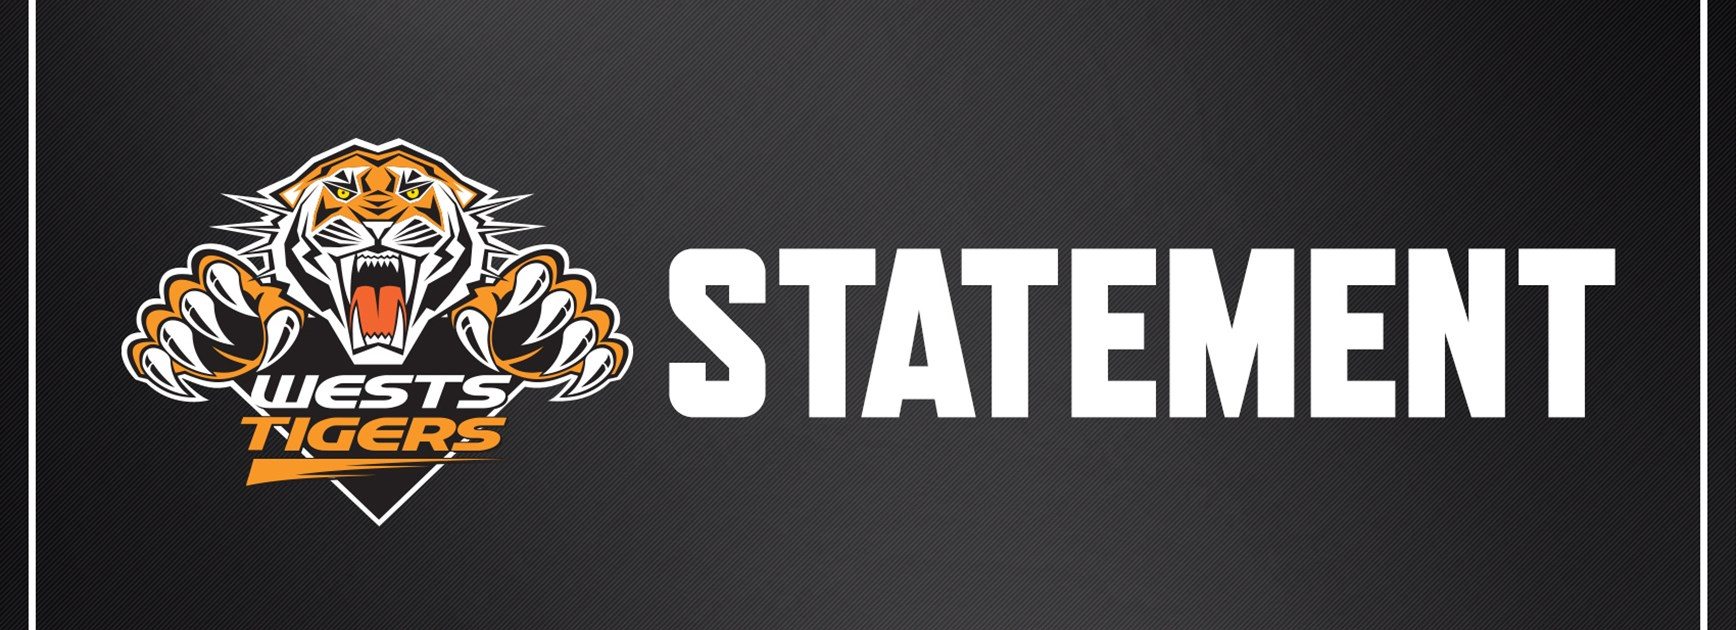 Wests Tigers Statement on Zane Musgrove